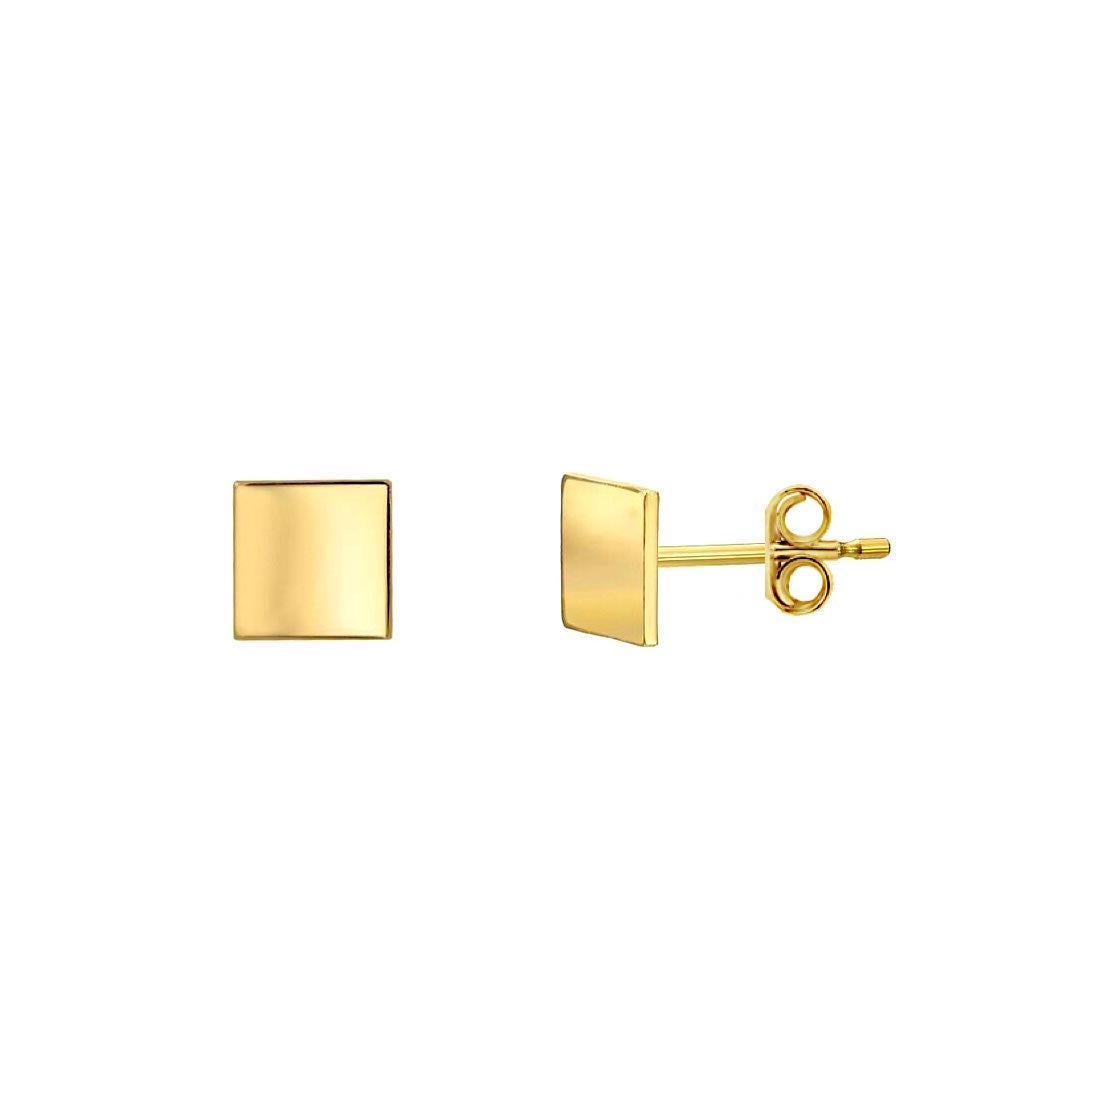 Golden Square Stud Earrings